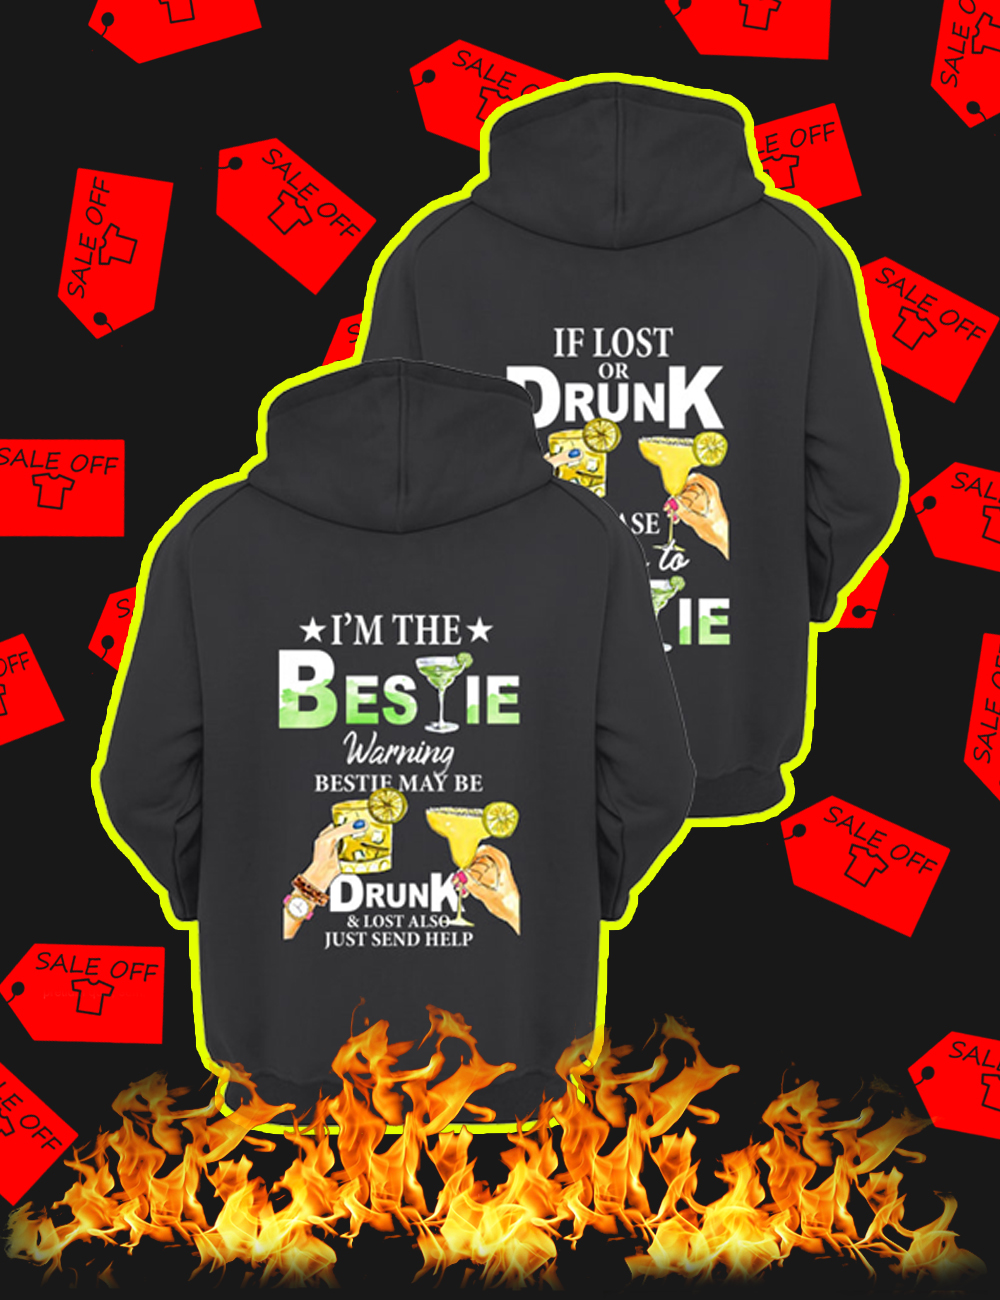 If Lost Or Drunk Please Return To Bestie Hoodie-back version